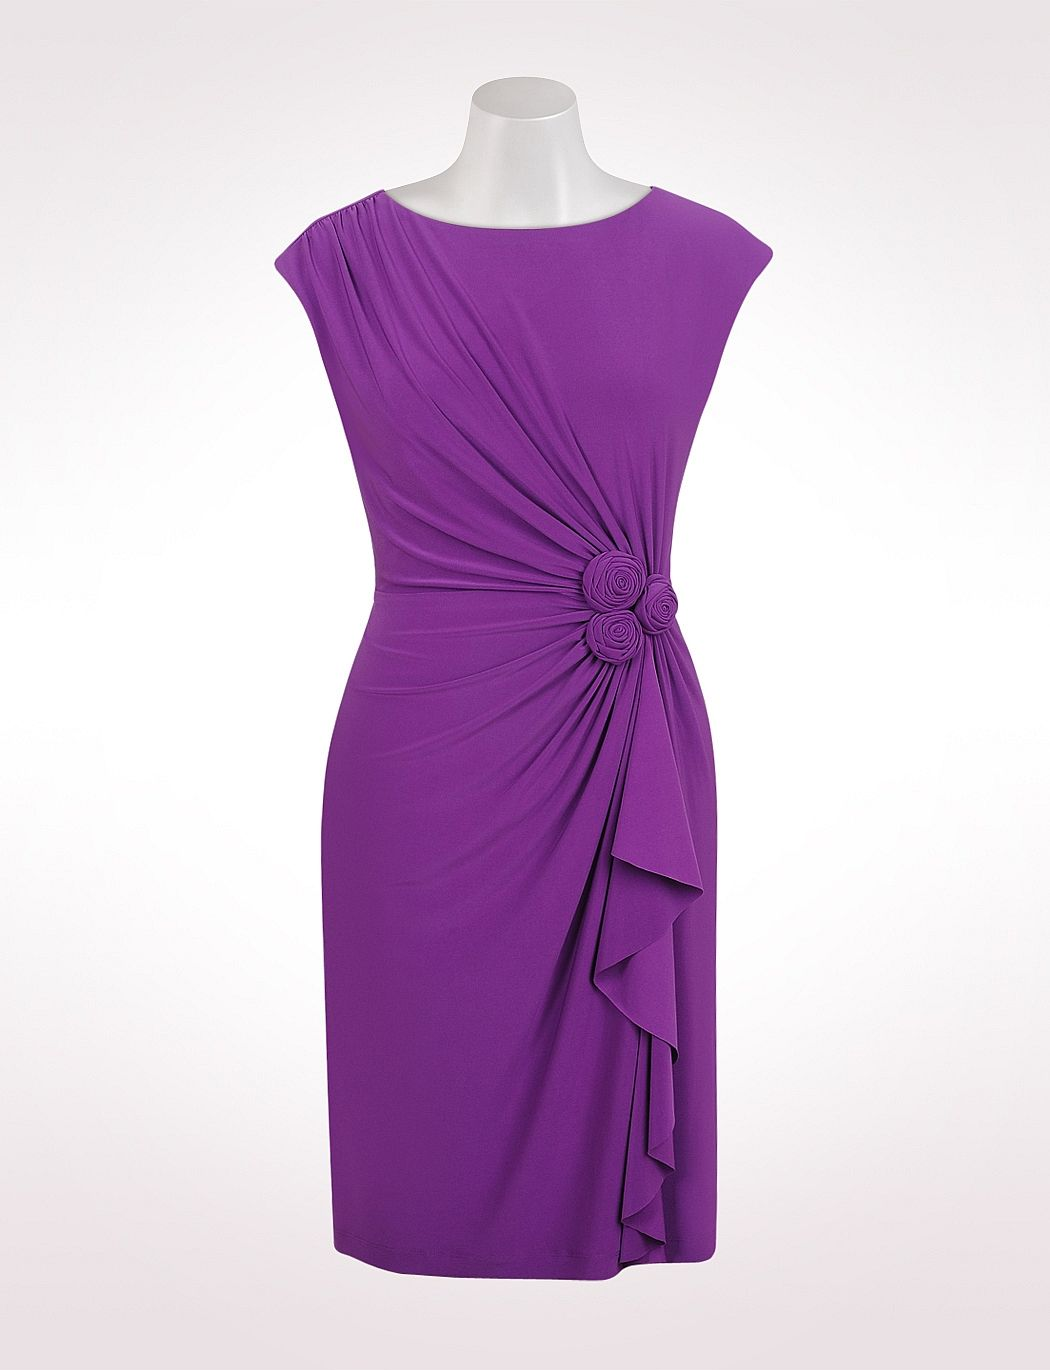 Purple Dress Dressbarn Clothes Shoes And Accessories